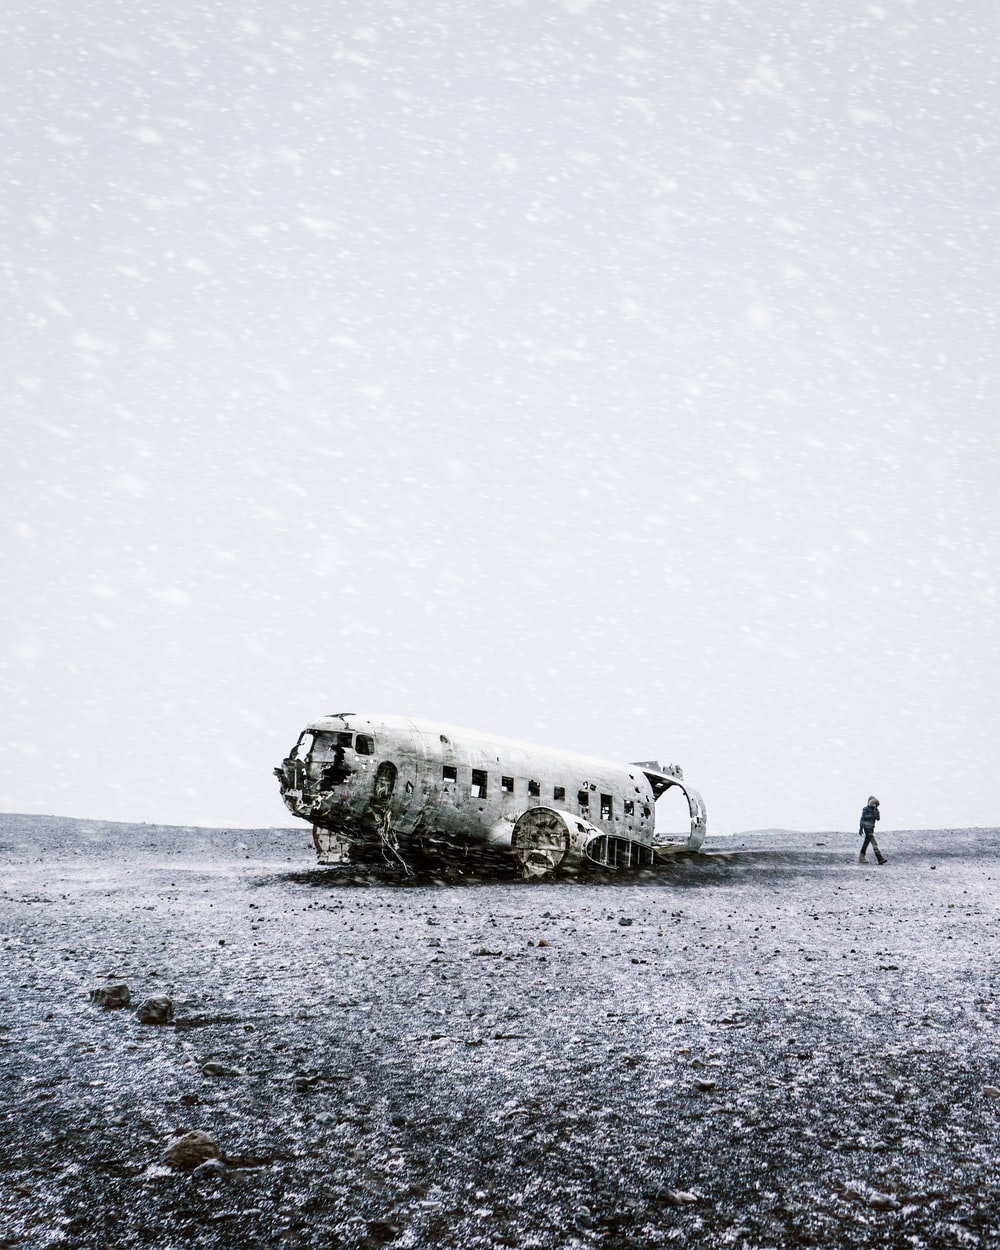 grayscale photo of crushed plane beside person